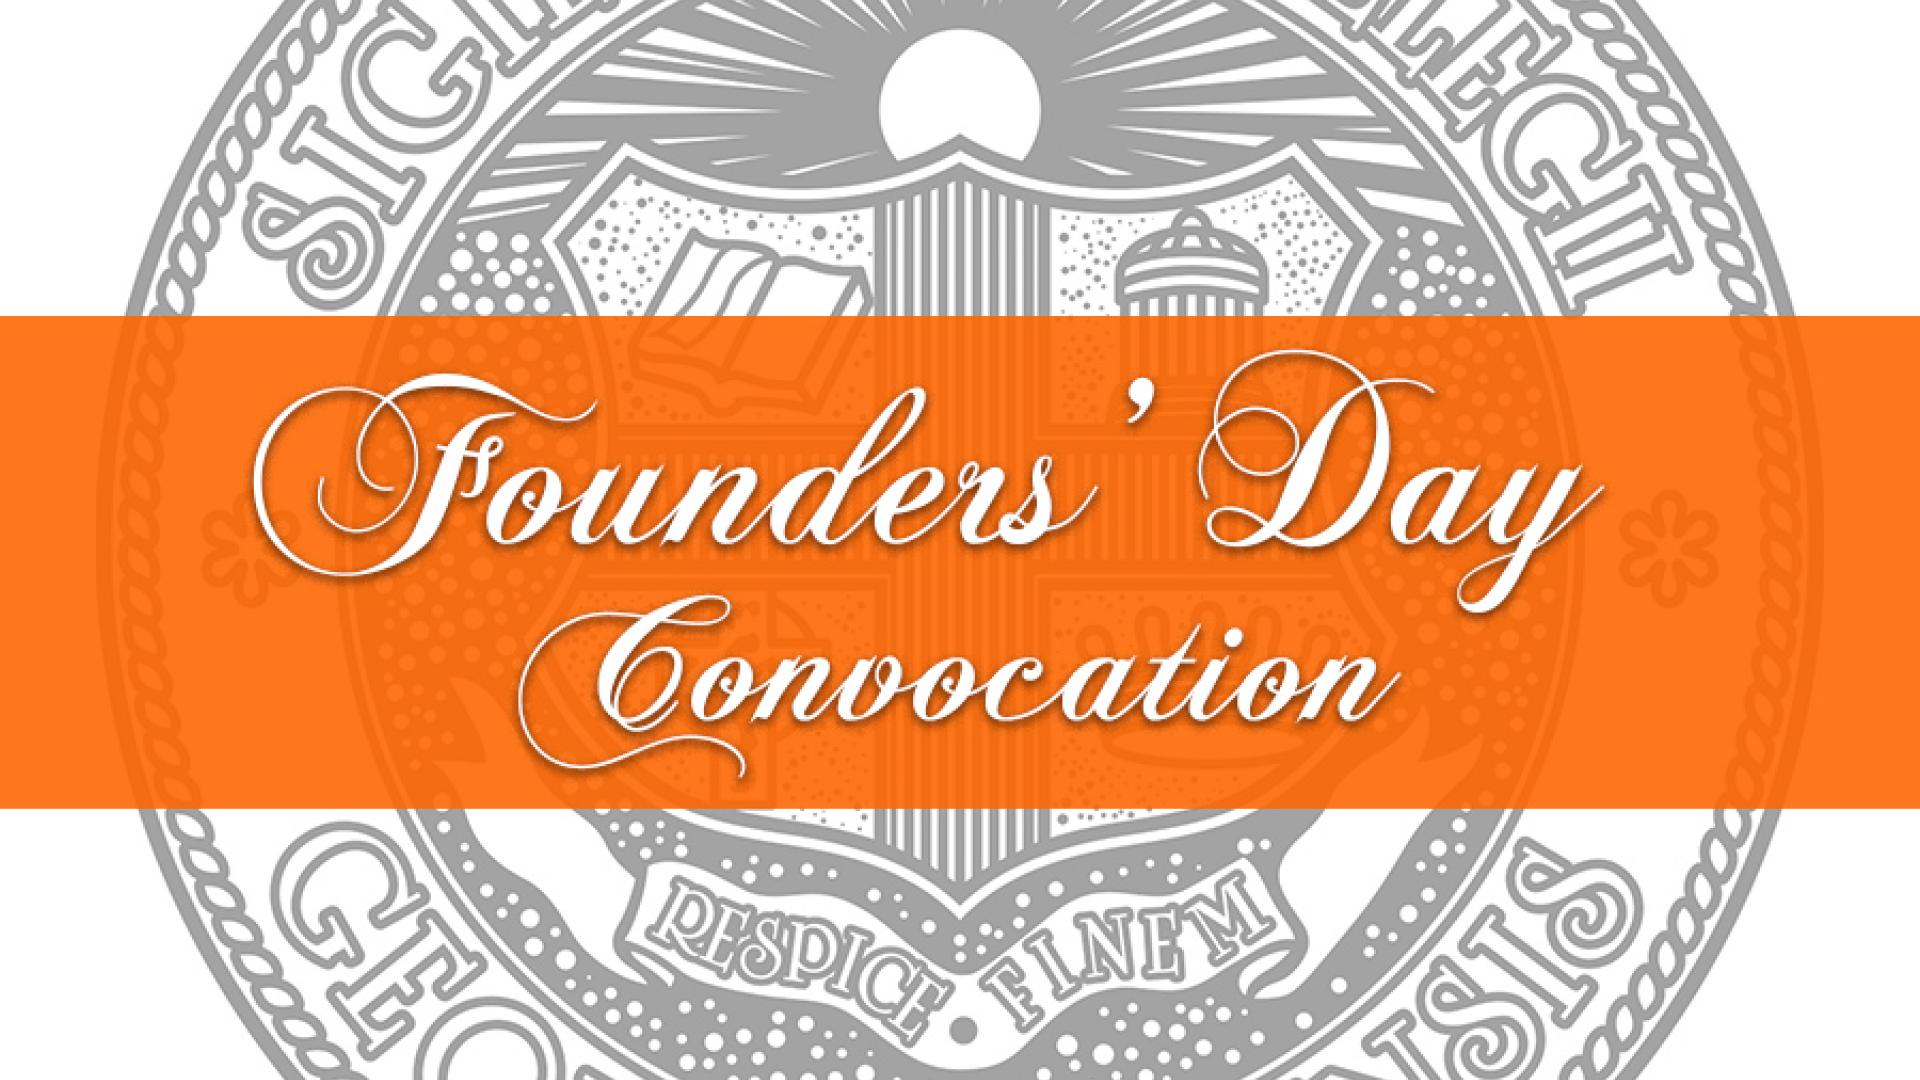 Founders' Day image